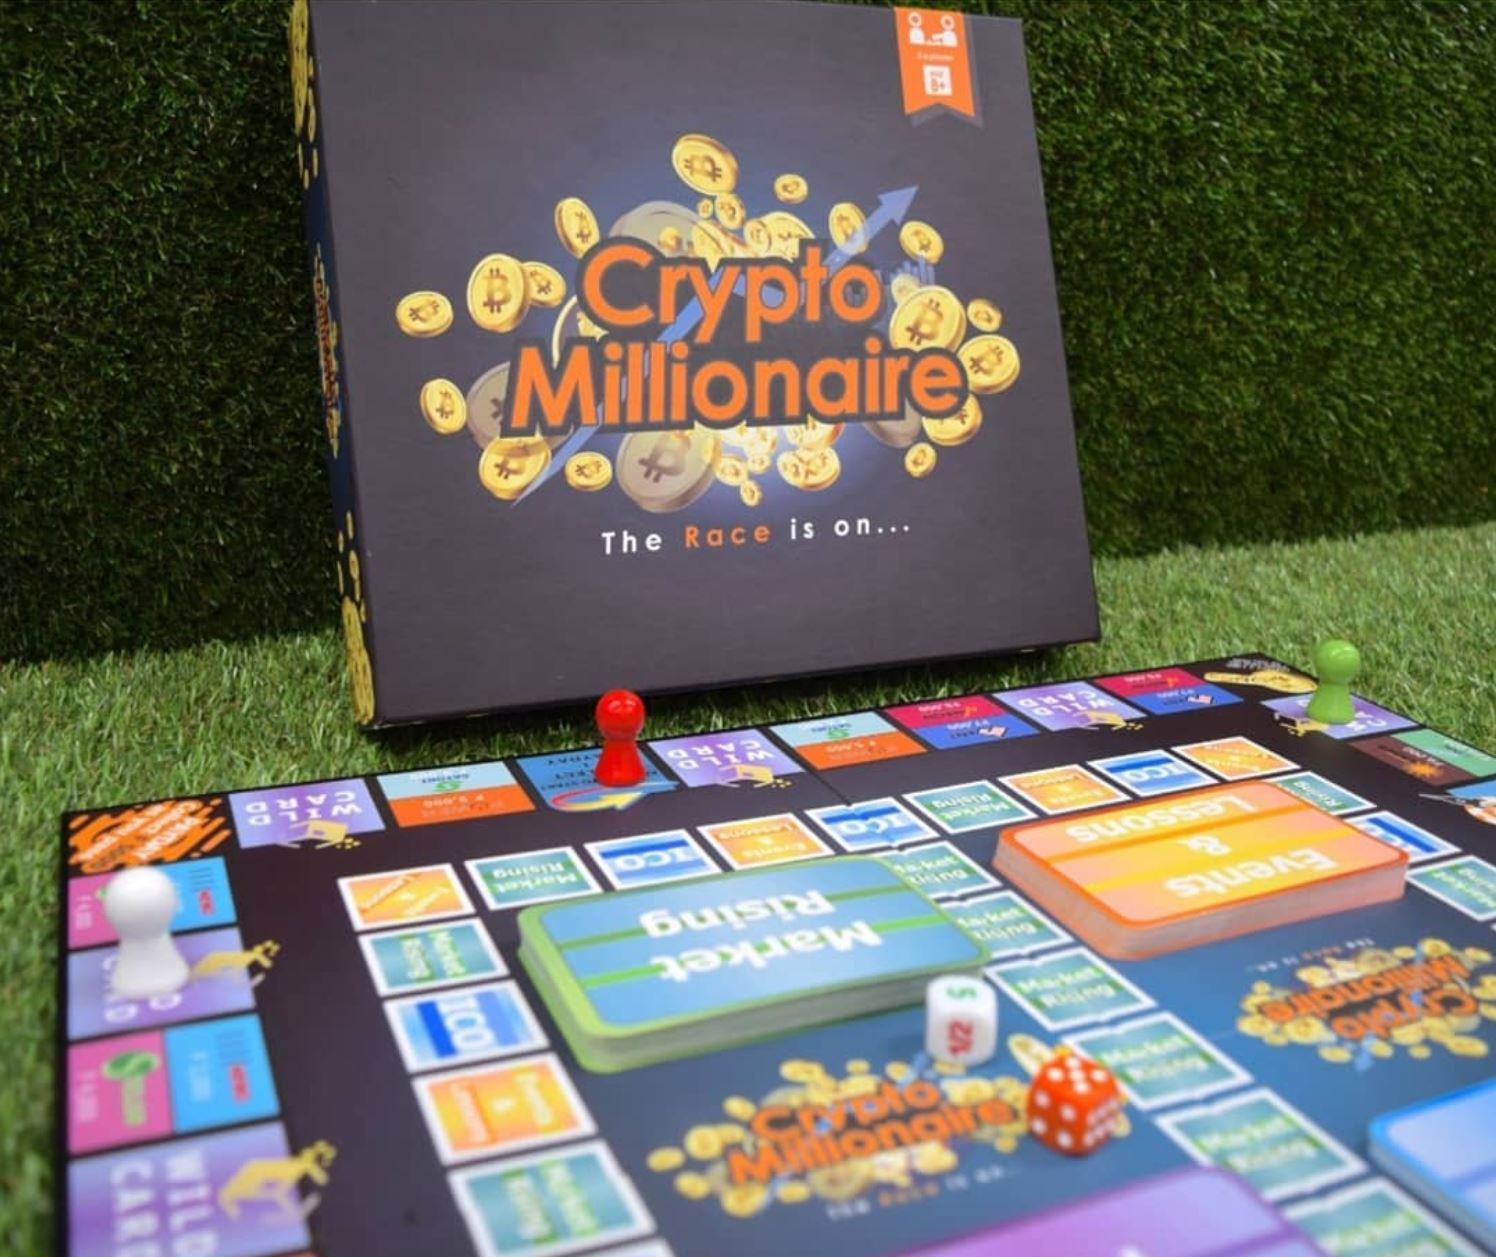 Crypto Millionaire Board Game Cover.JPG